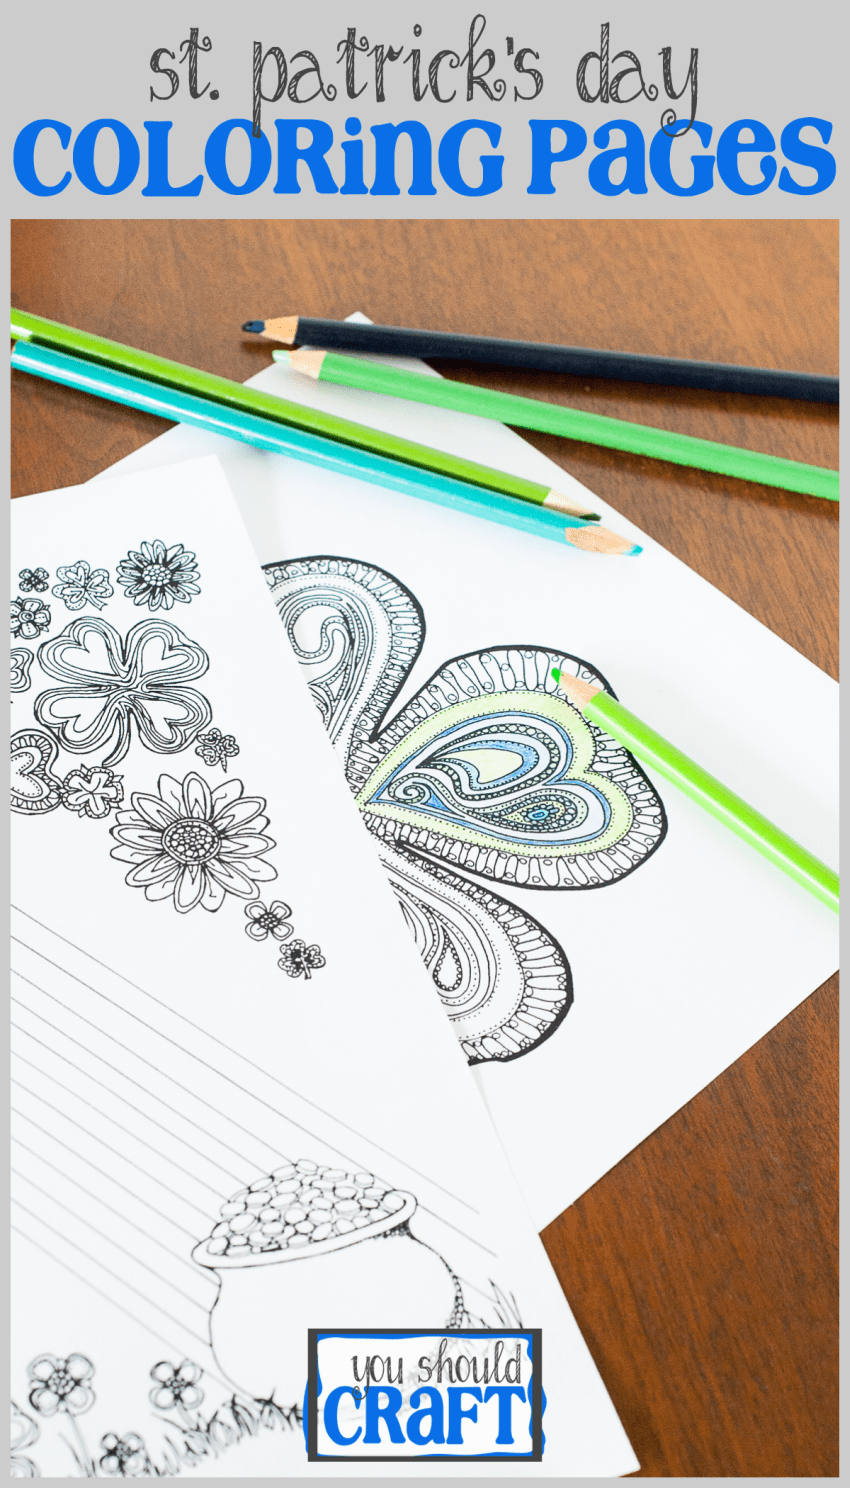 Co coloring book page leprechaun - Download A Free Printable Pattern For The Beer Mug Beer Cozy And A Bonus Printable For The Leprechaun Hat Beer Cozy Click Here For The Freebies